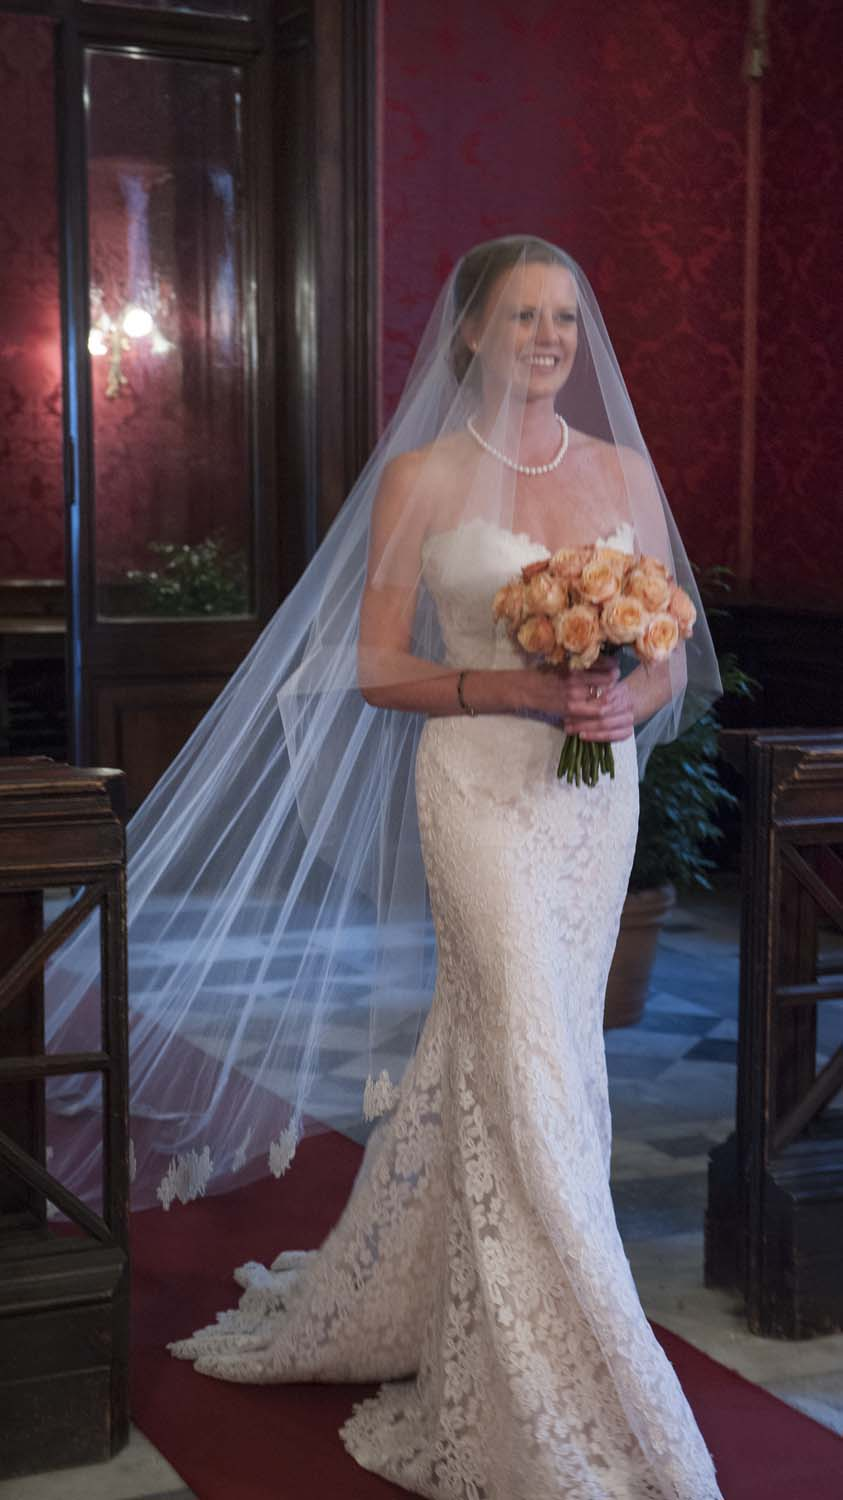 a beautiful bride entering the red hall for her unforgettable elopement at the red hall in Rome